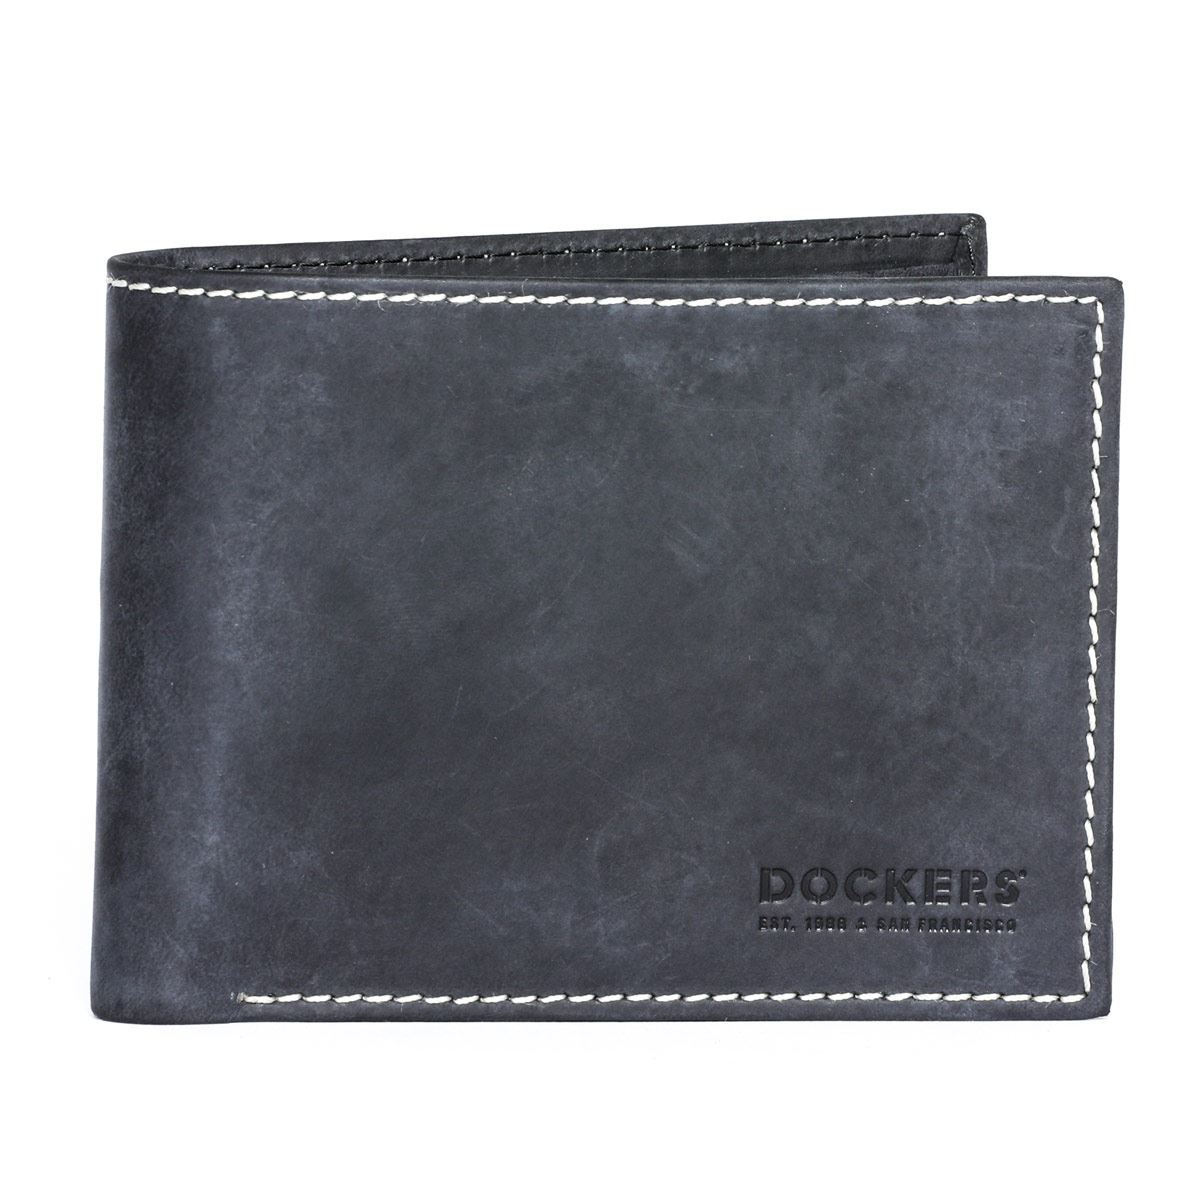 Billetera Dockers Dmlwb-W005